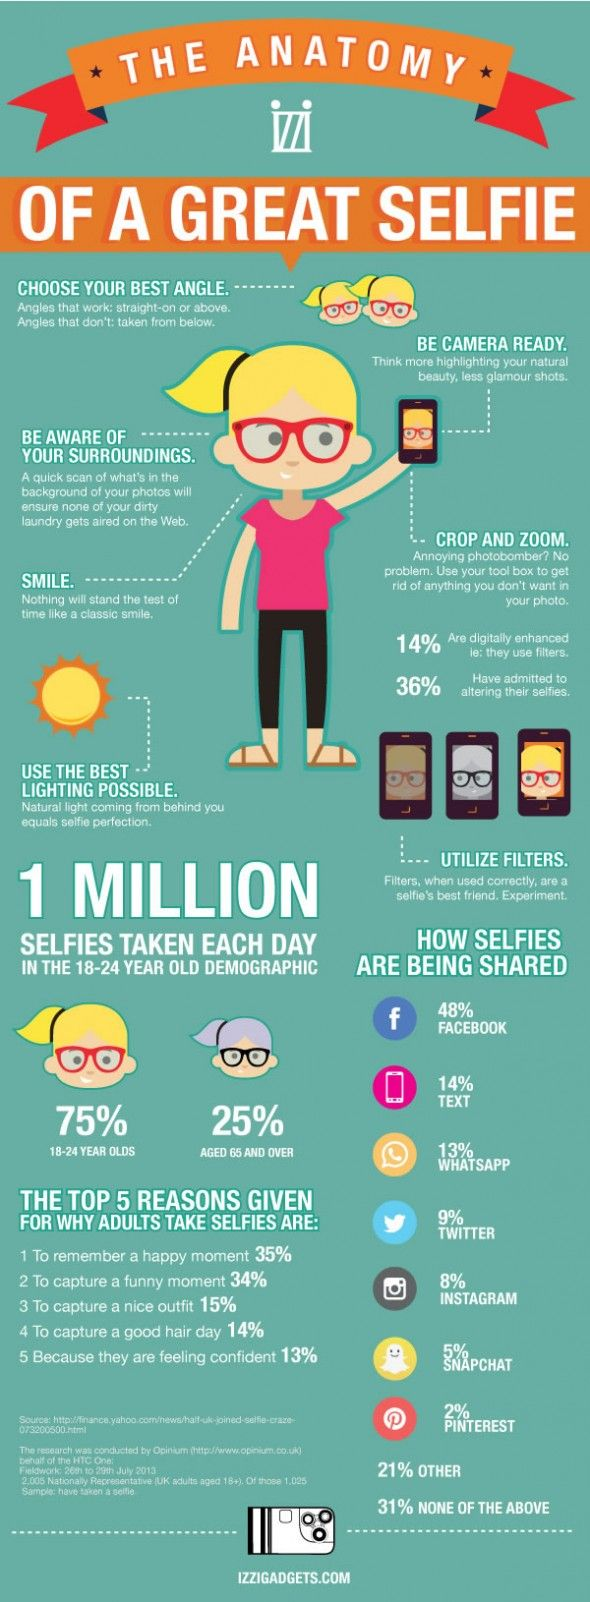 Infographic: Selfies - The Do's and Don'ts of the Selfie